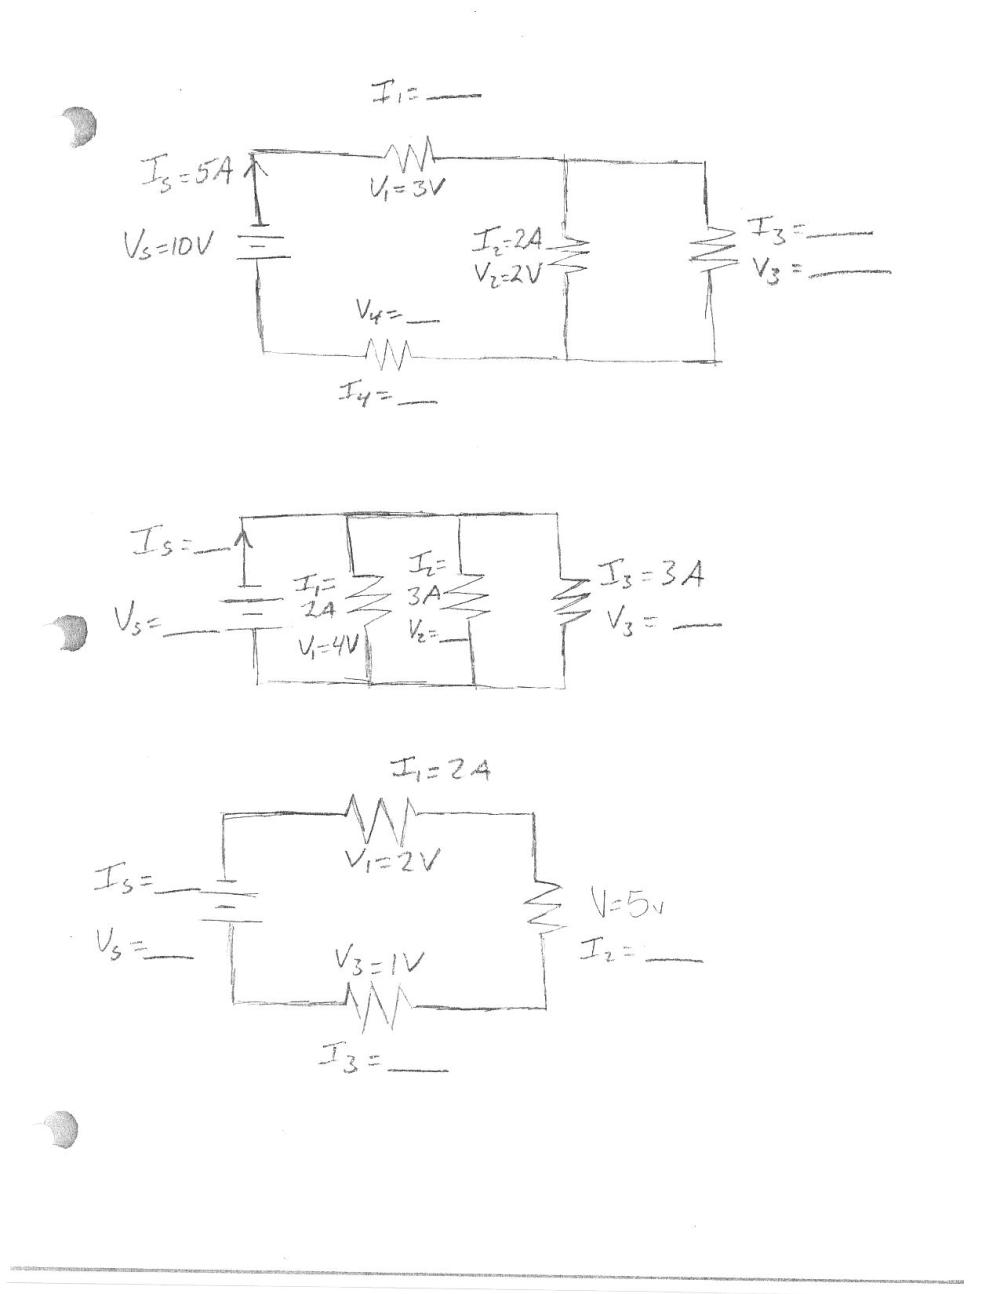 medium resolution of nov 18th practice drawing circuits for your quiz tomorrow circuit construction review and summary note nov 19th circuit drawing quiz calculations with